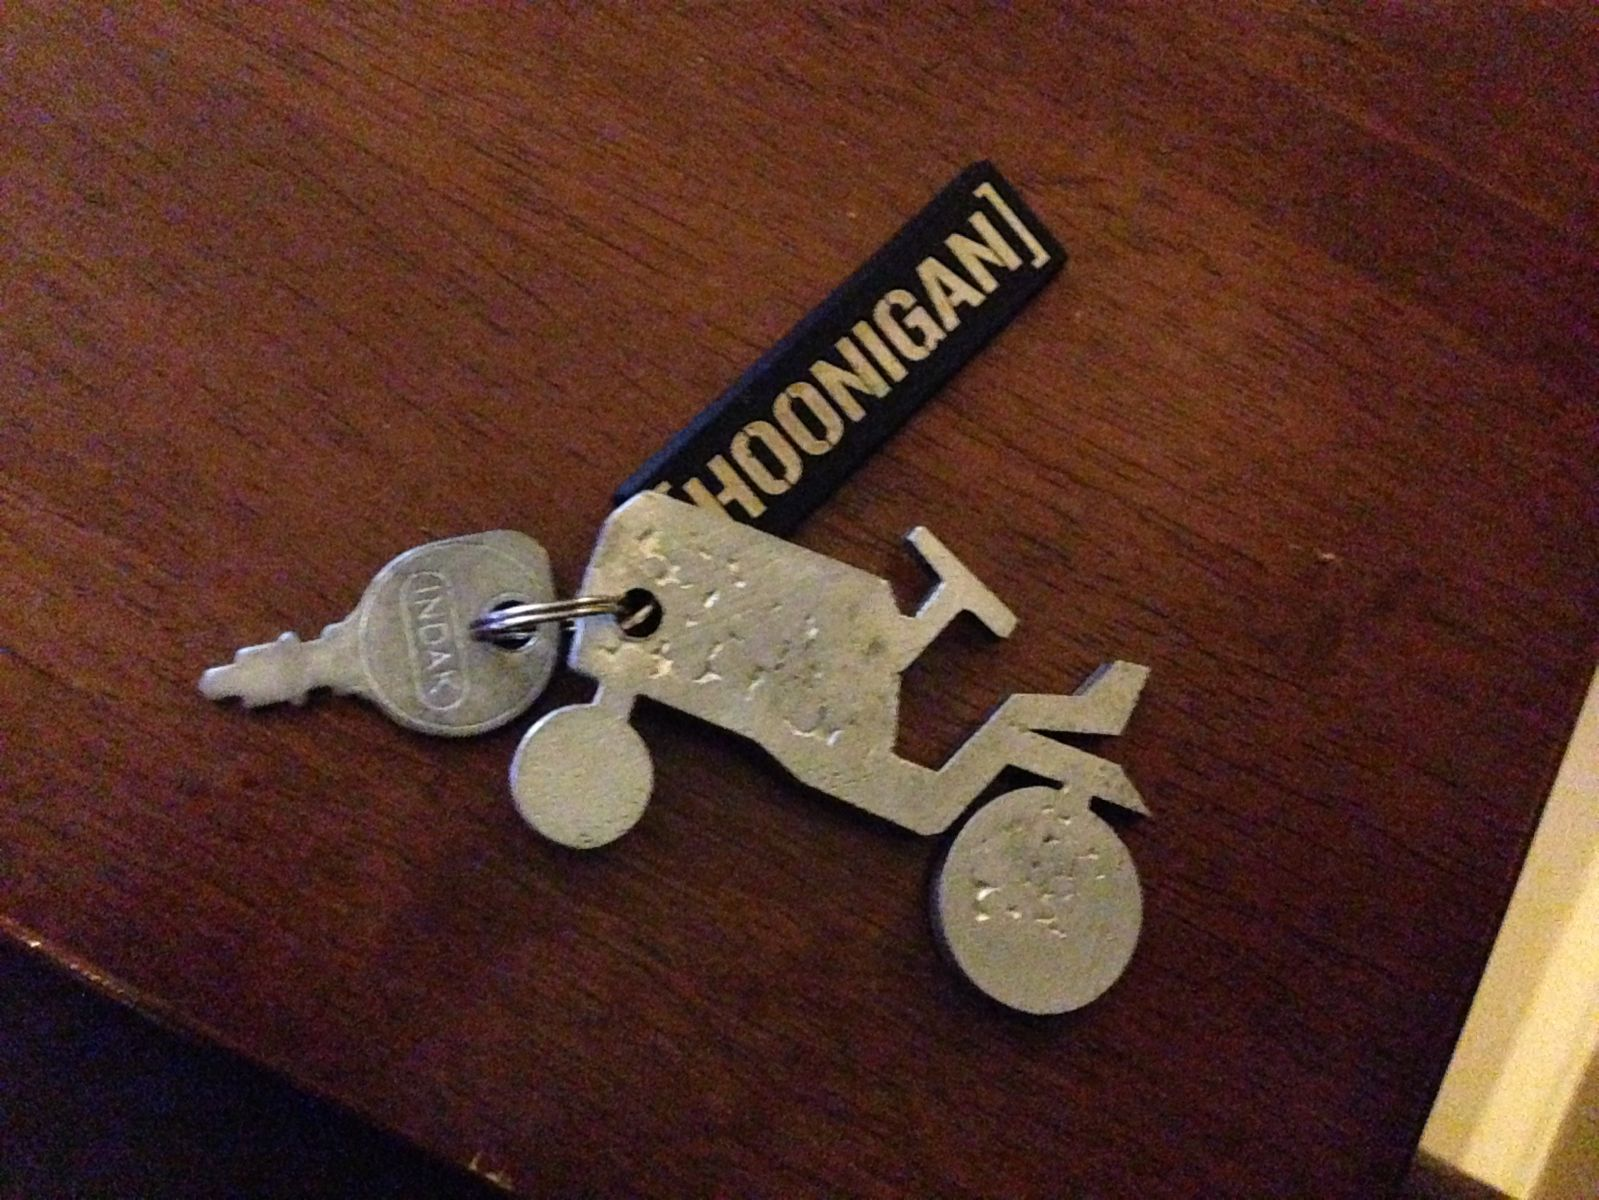 the new keyring on my tractor keys